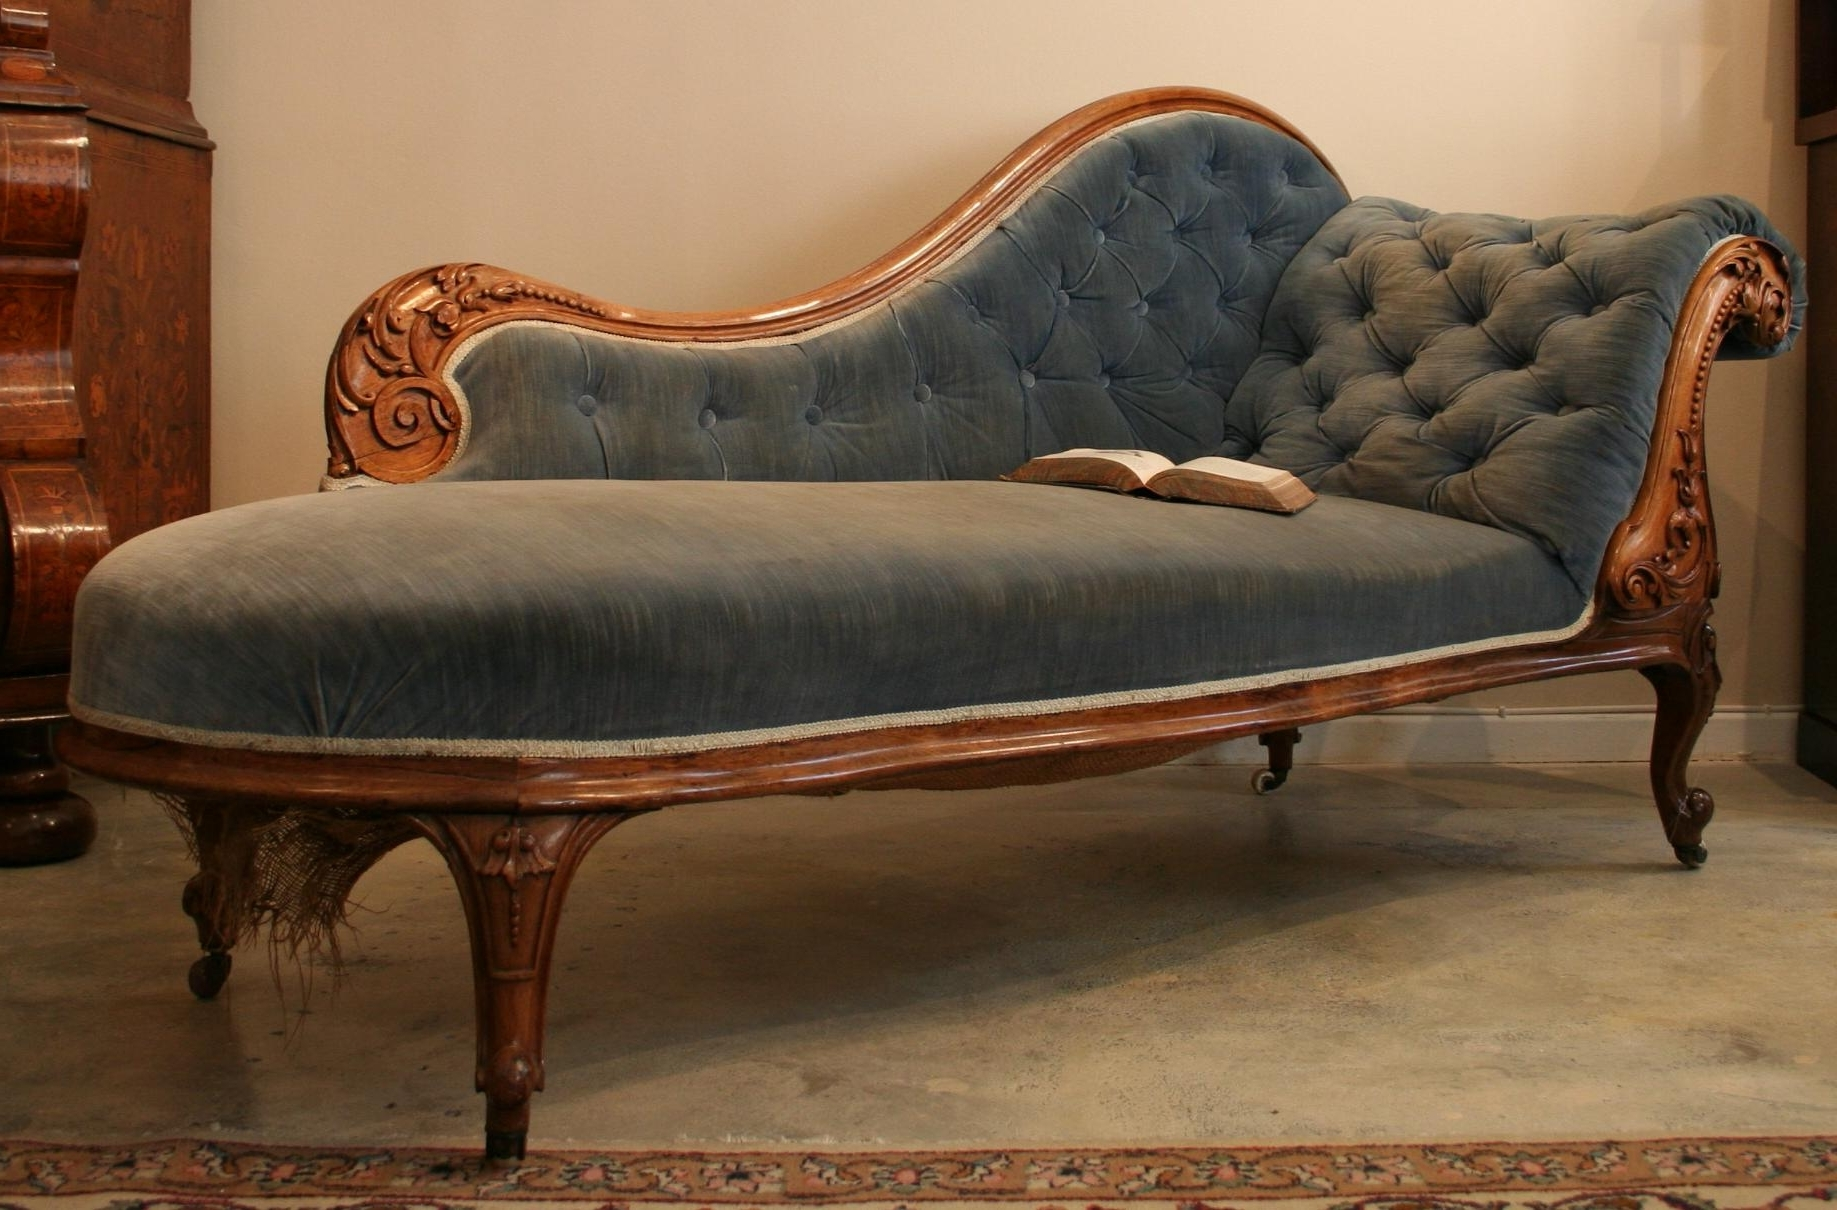 Cheap Chaise Lounge Chairs Within Fashionable Cheap Chaise Lounge Chairs – Oknws (View 7 of 15)